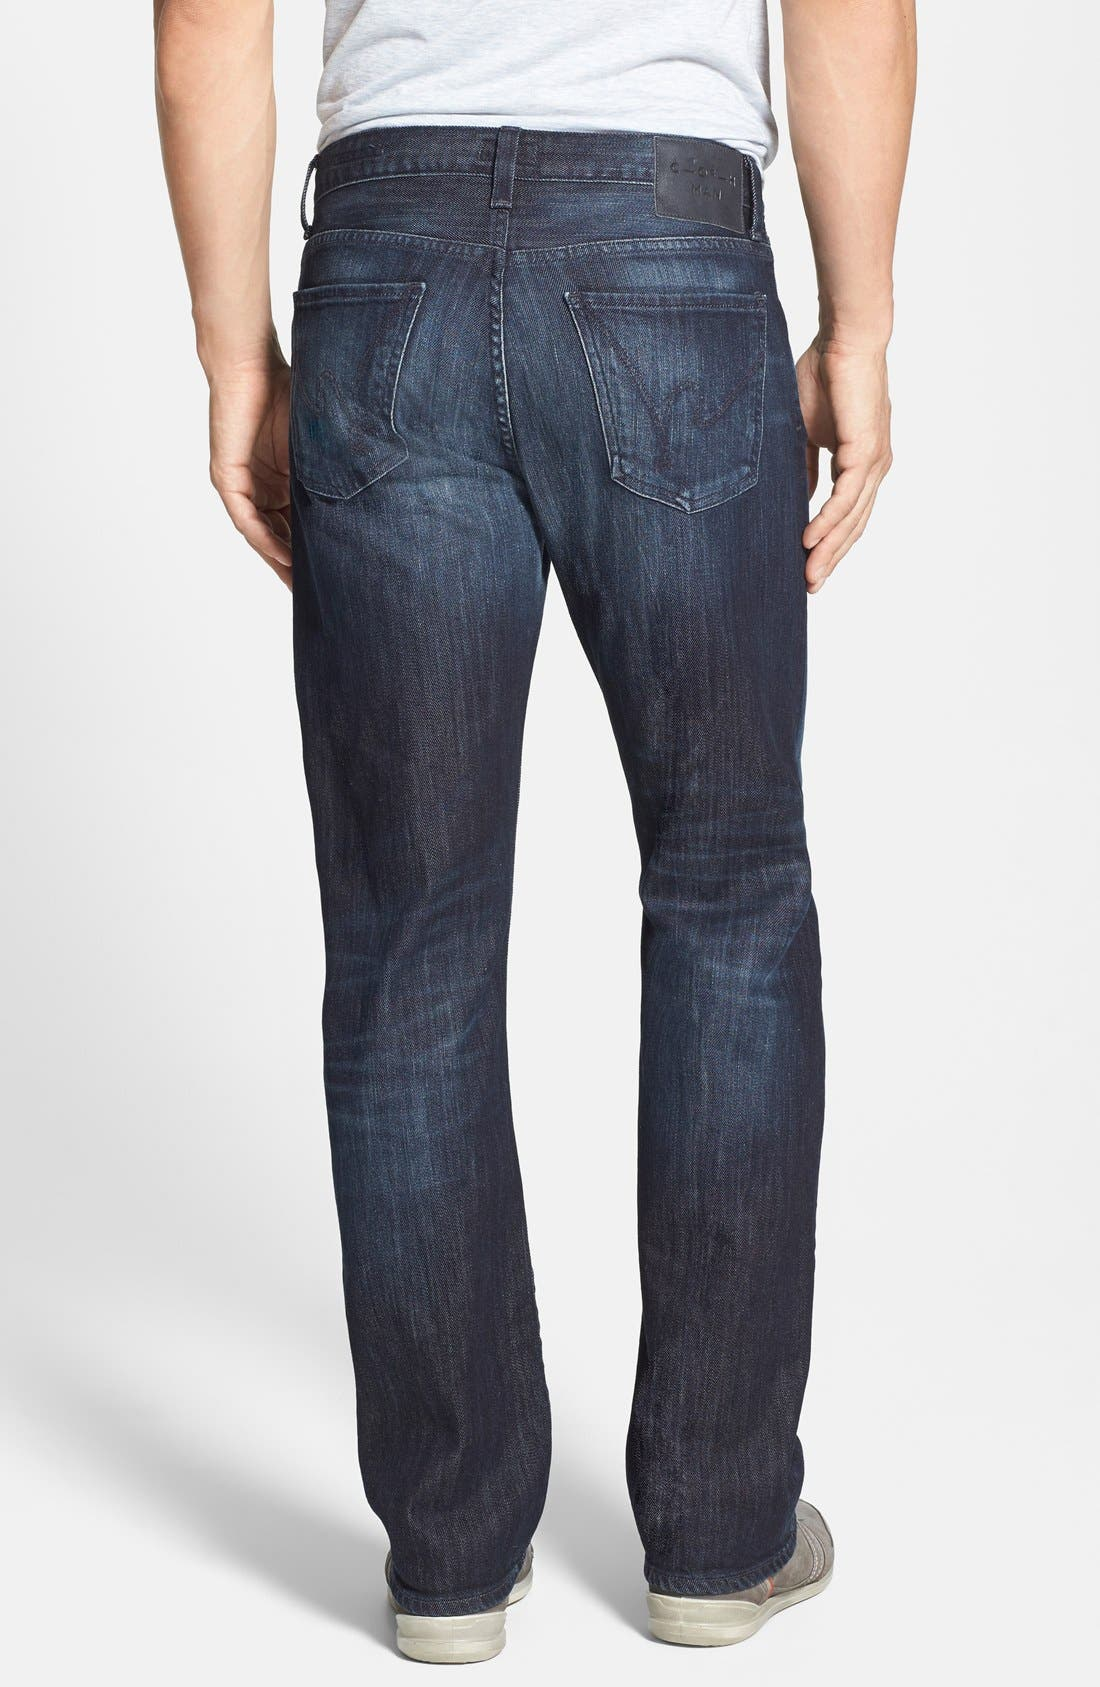 Alternate Image 2  - Citizens of Humanity 'Evans' Relaxed Fit Jeans (Elko)